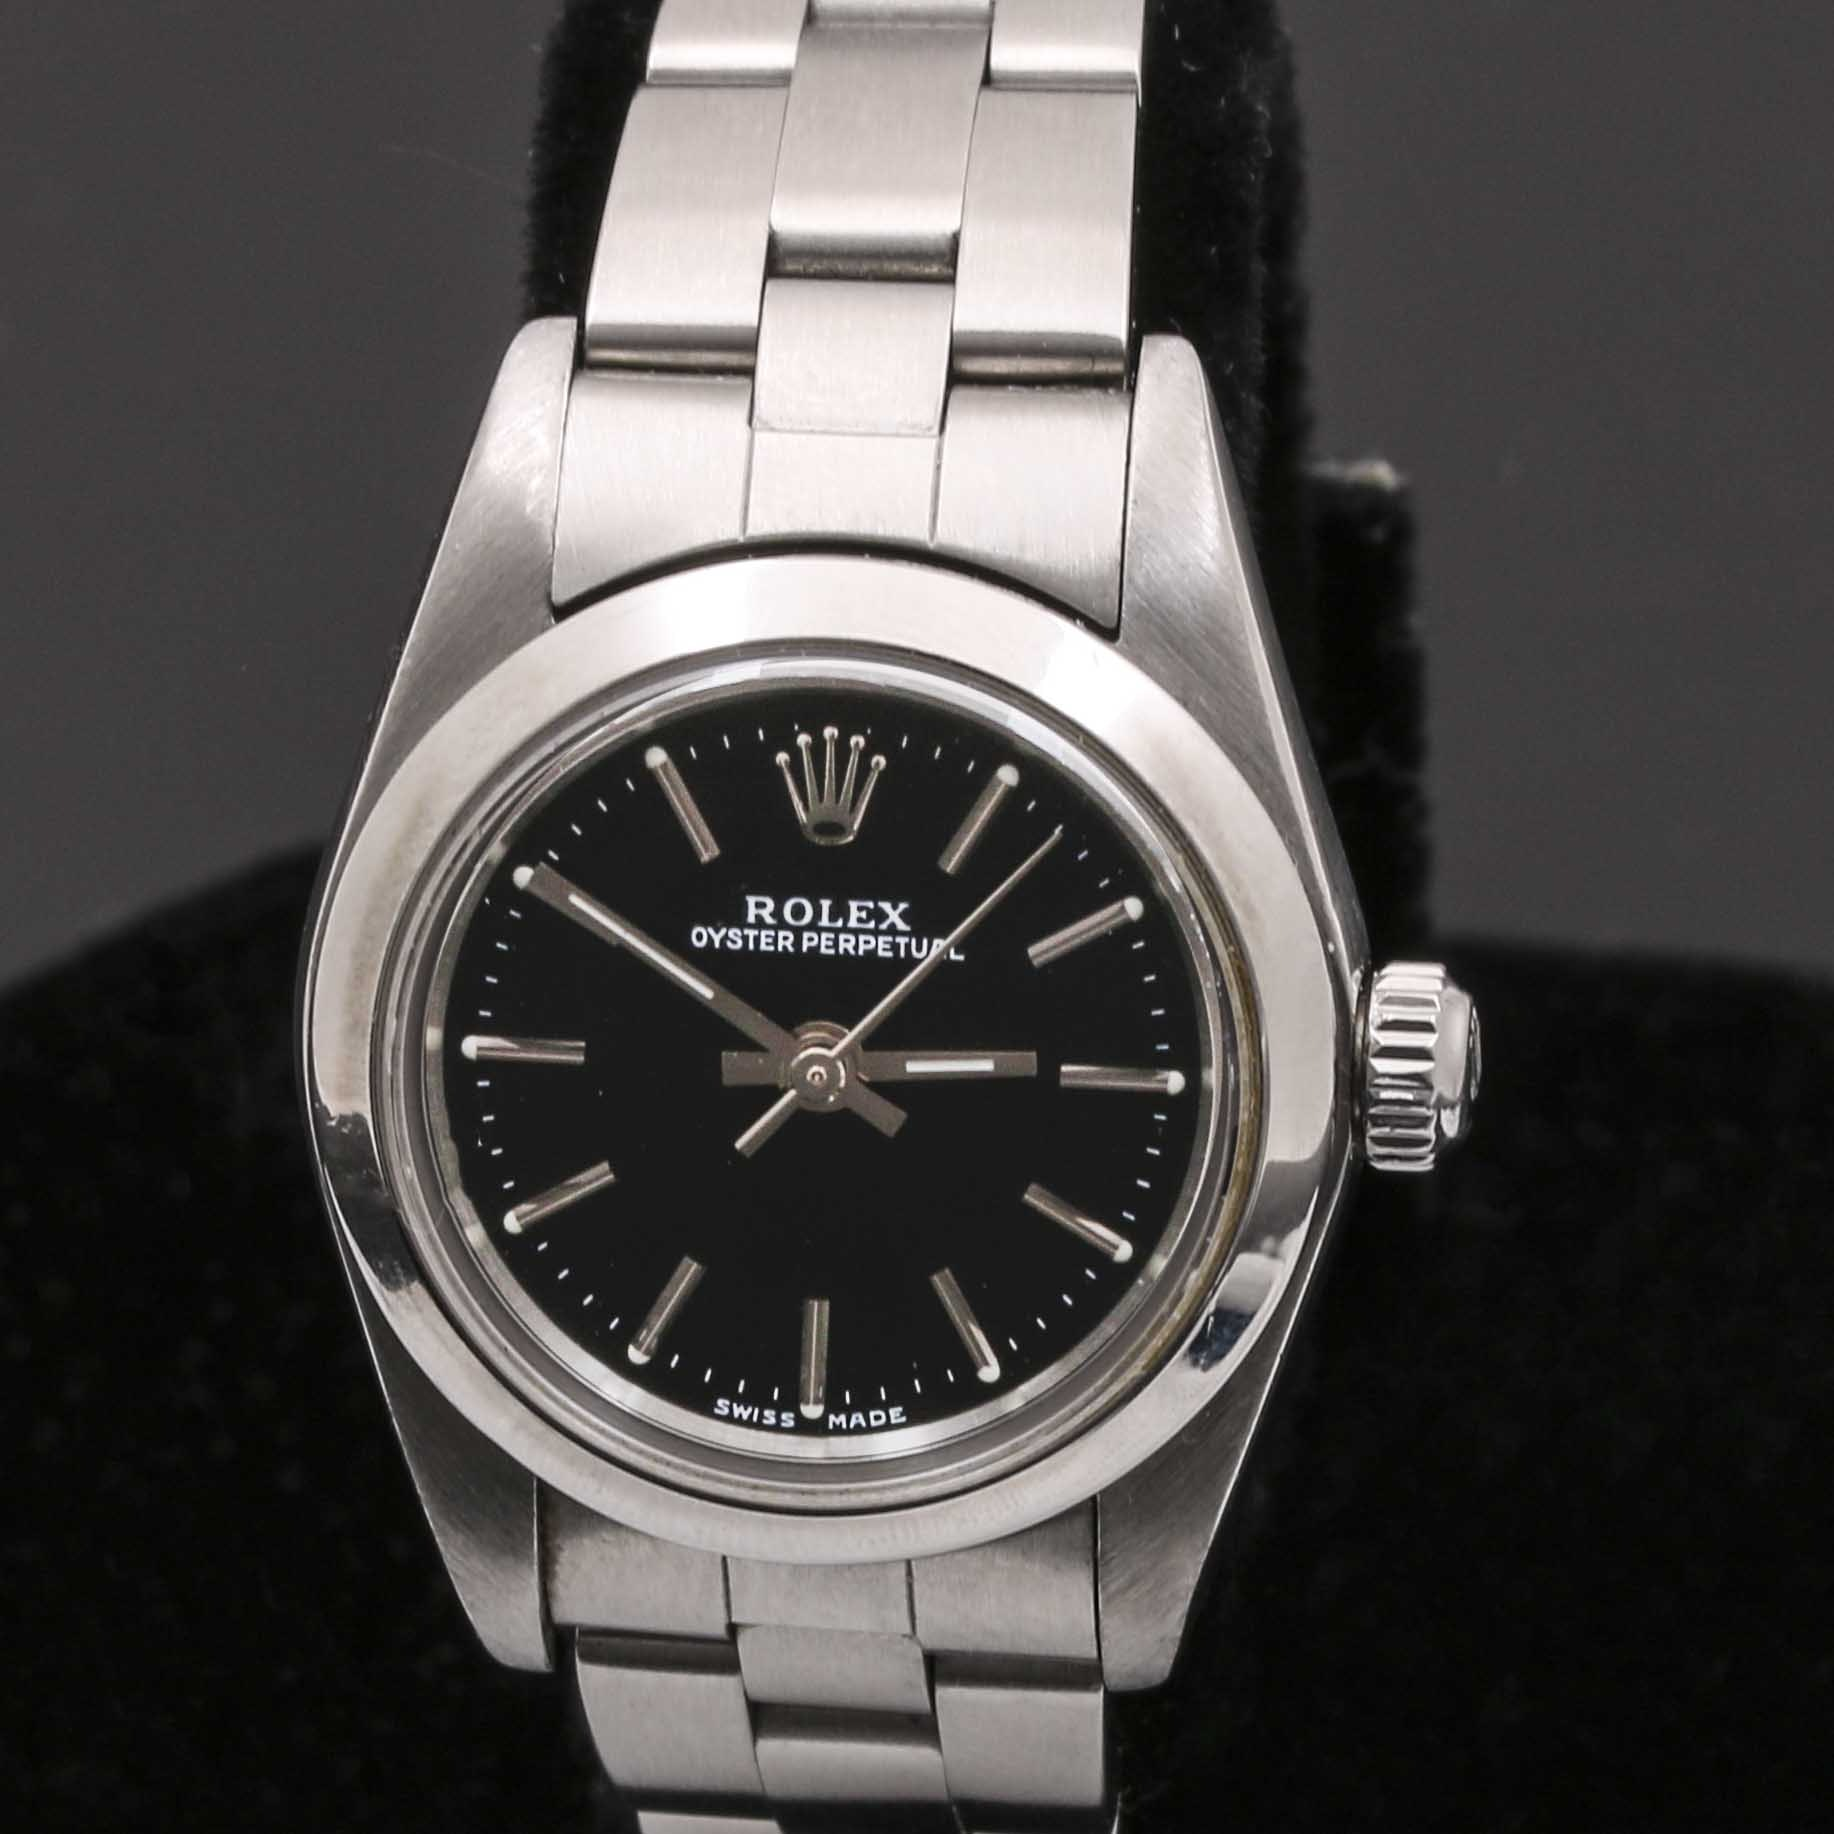 Stainless Steel Rolex Oyster Perpetual Wristwatch